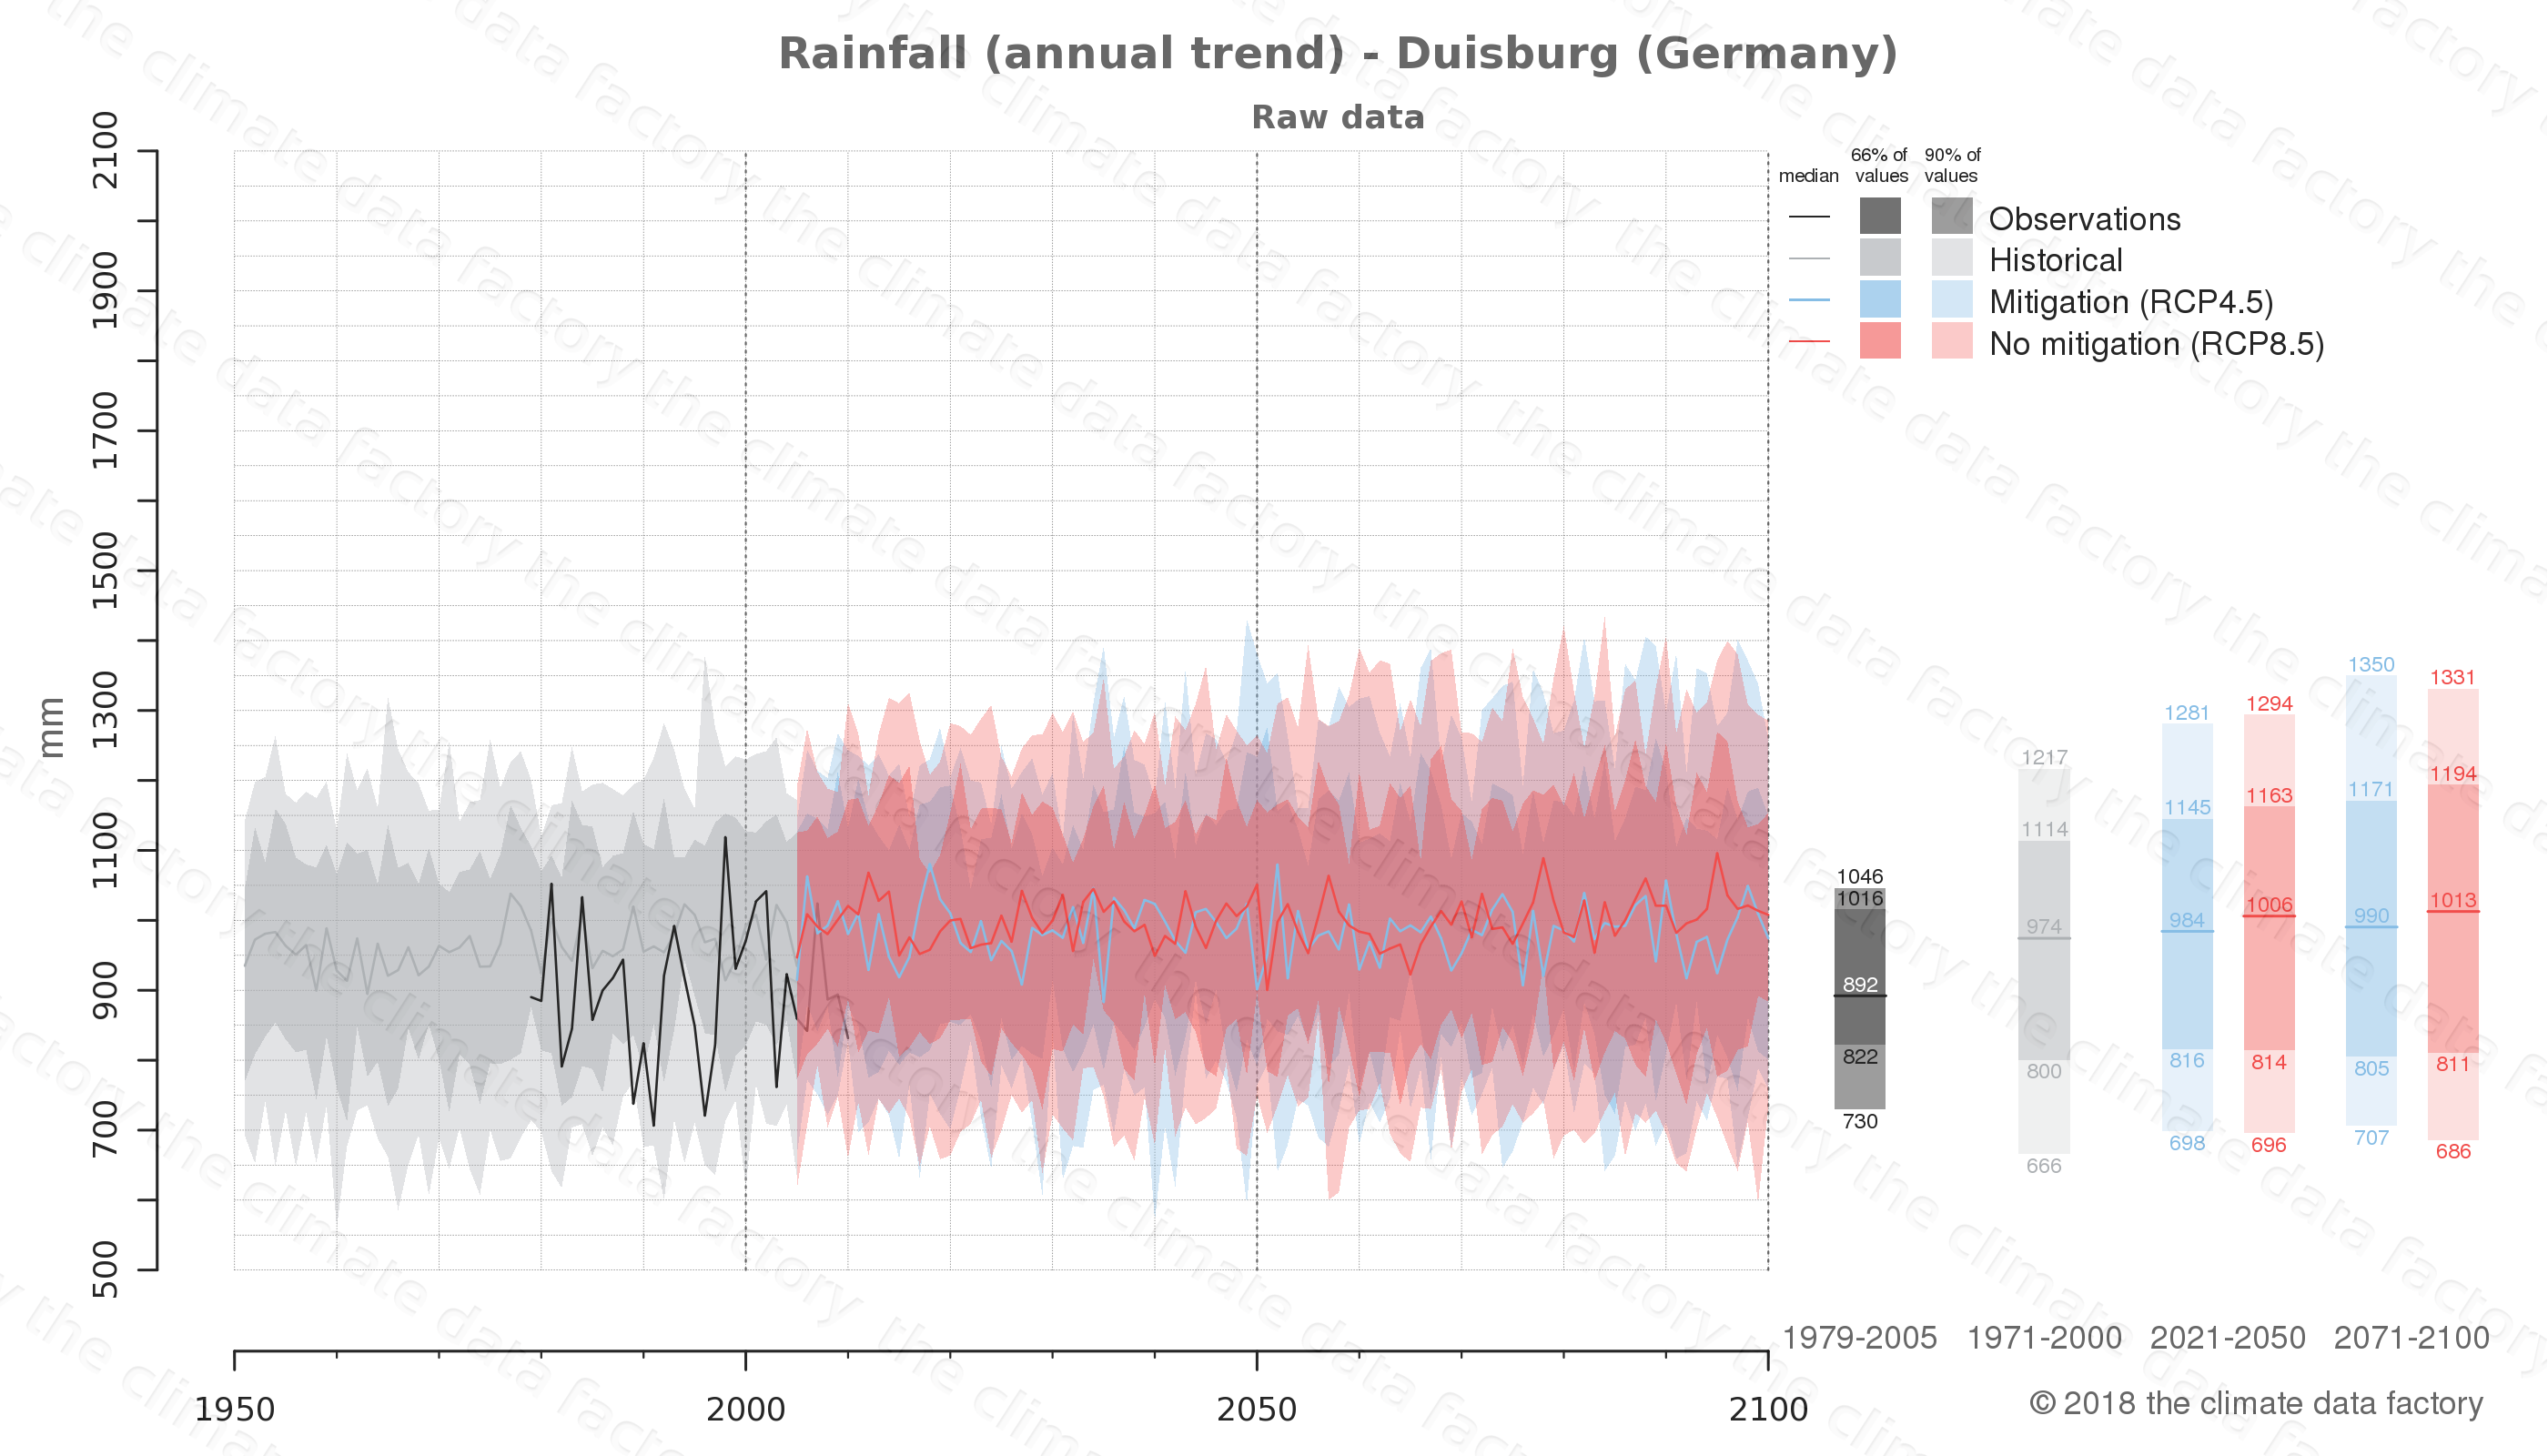 climate change data policy adaptation climate graph city data rainfall duisburg germany